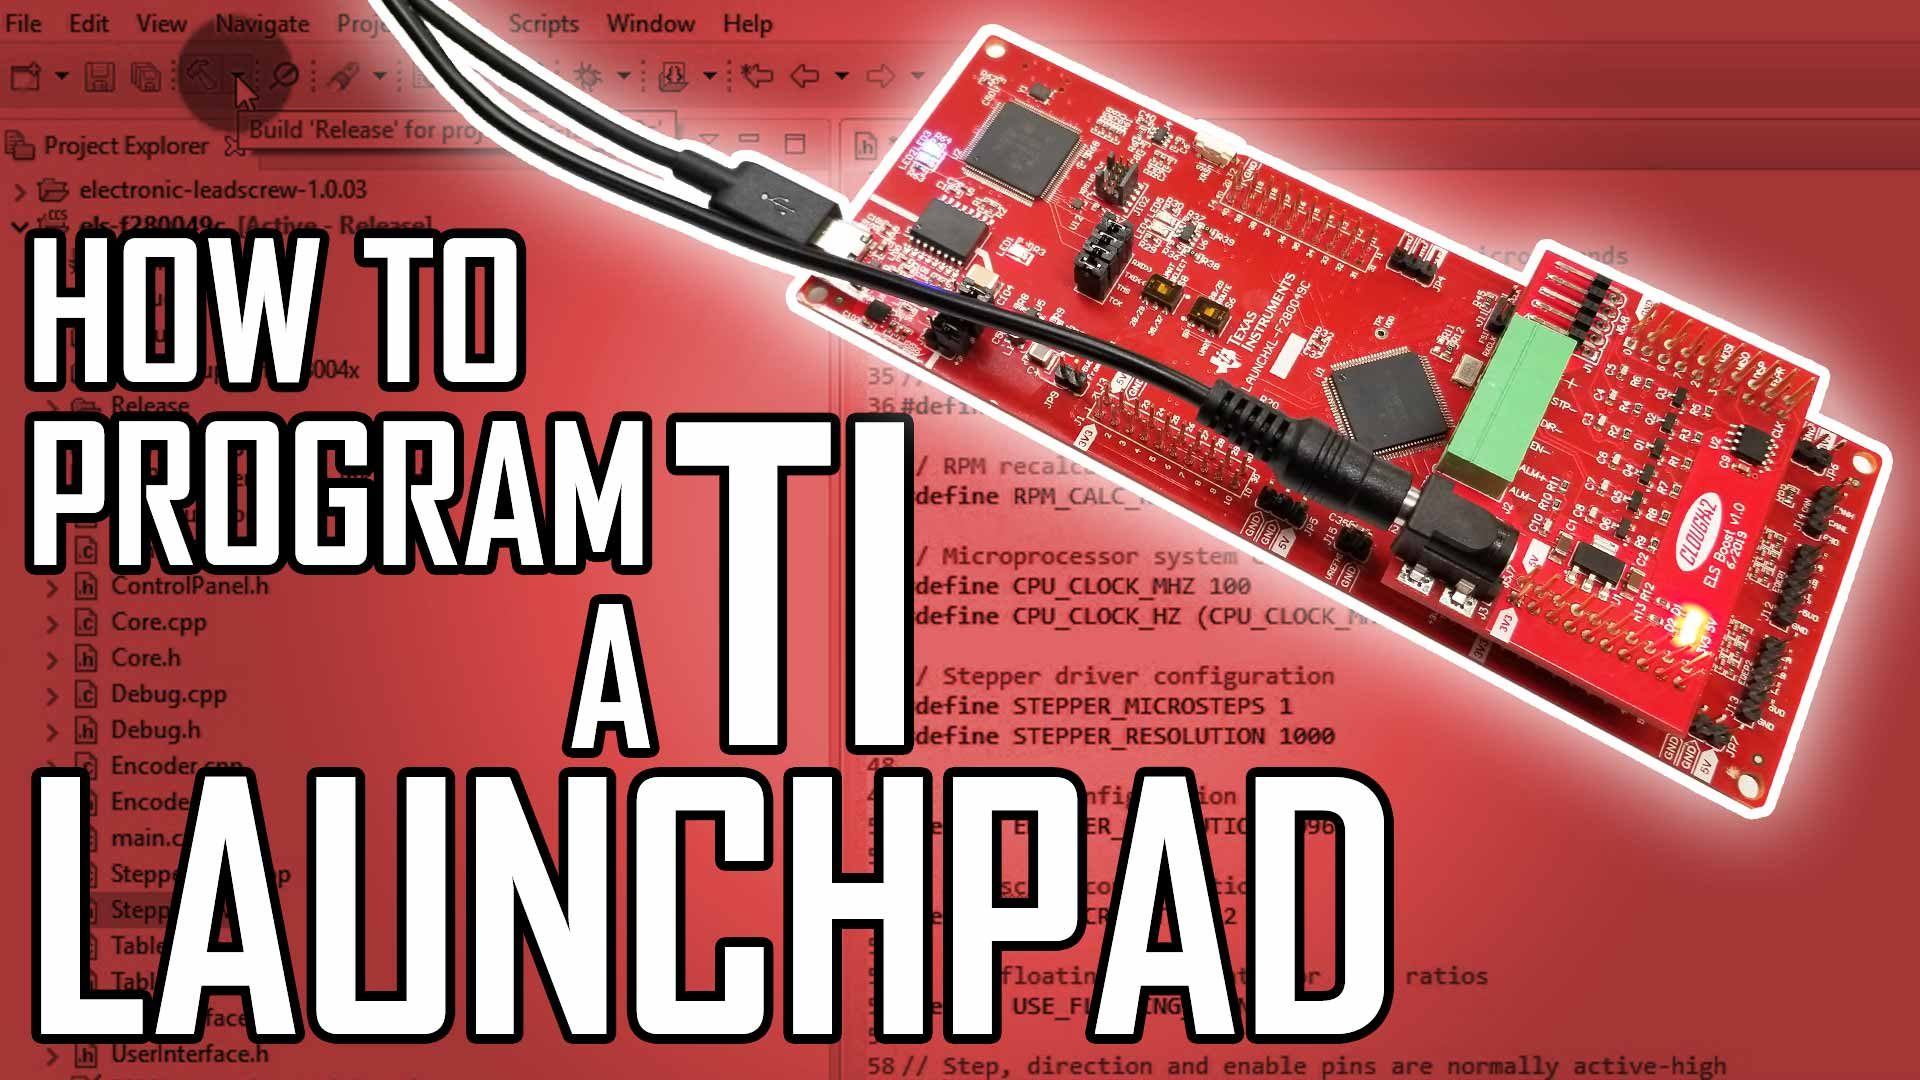 Lathe Electronic Leadscrew Part 10: How to Program a TI LaunchPad Microcontroller